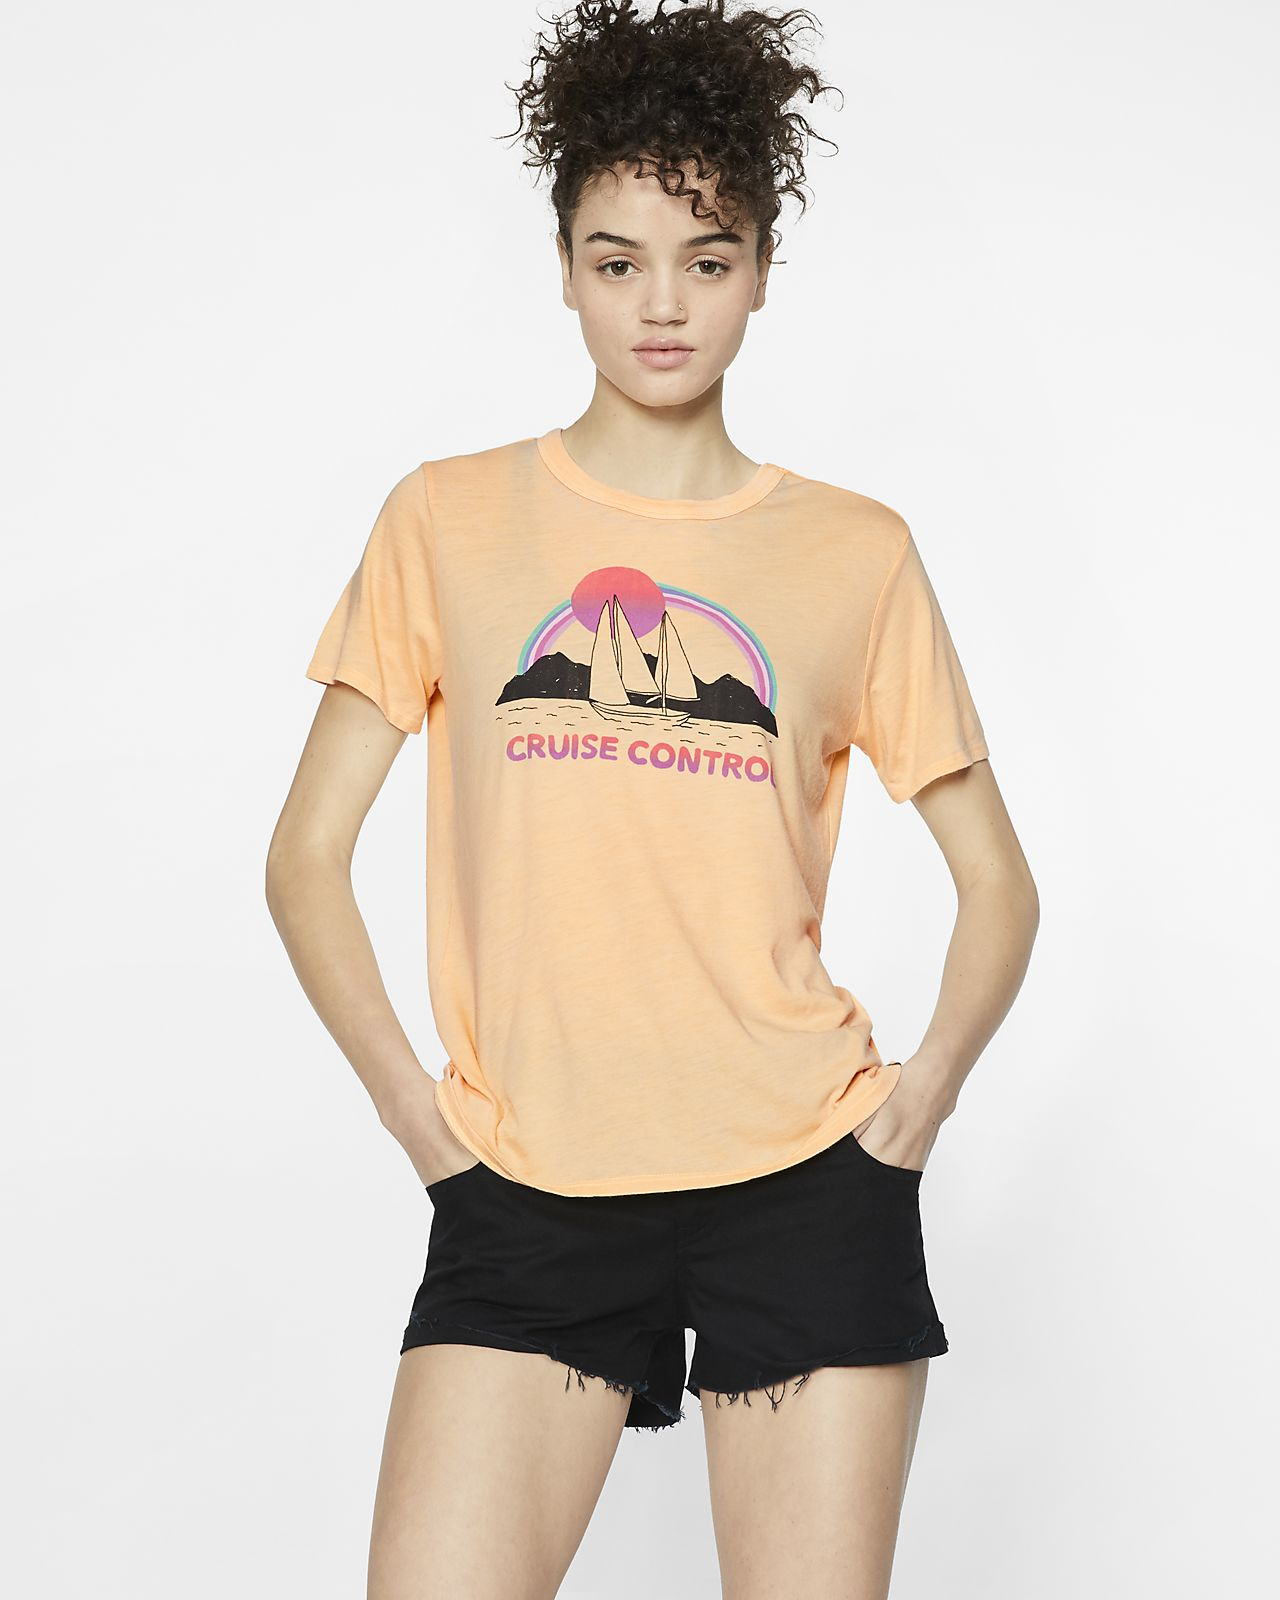 Tee-shirt Hurley Cruise Control pour Femme